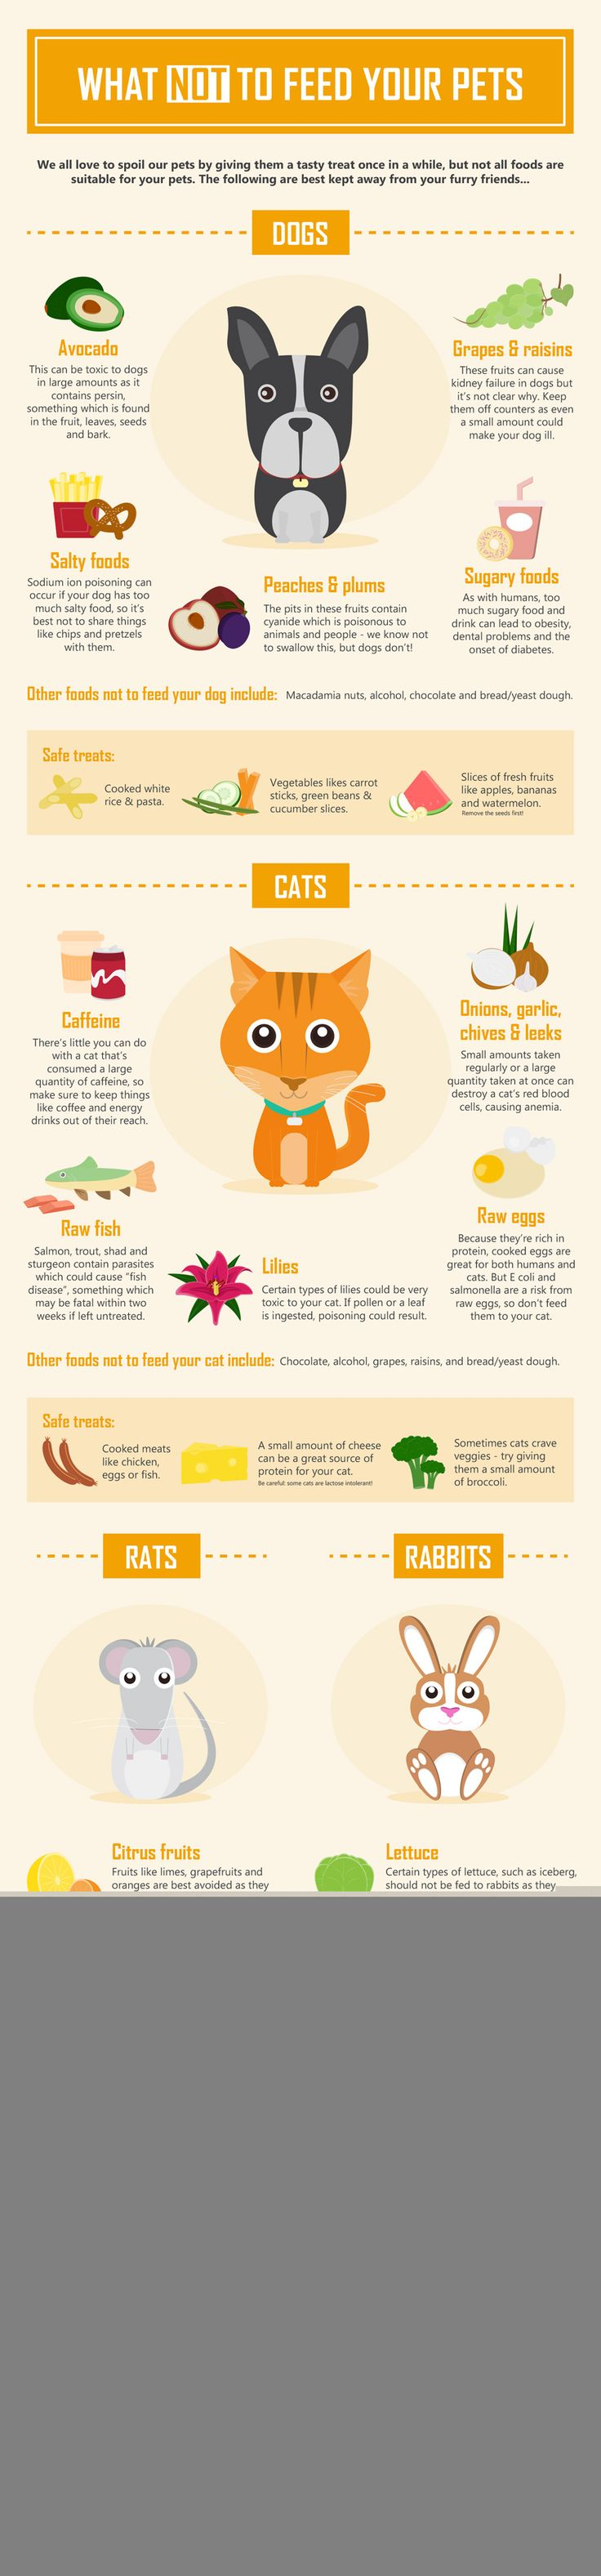 What not to feed your pet